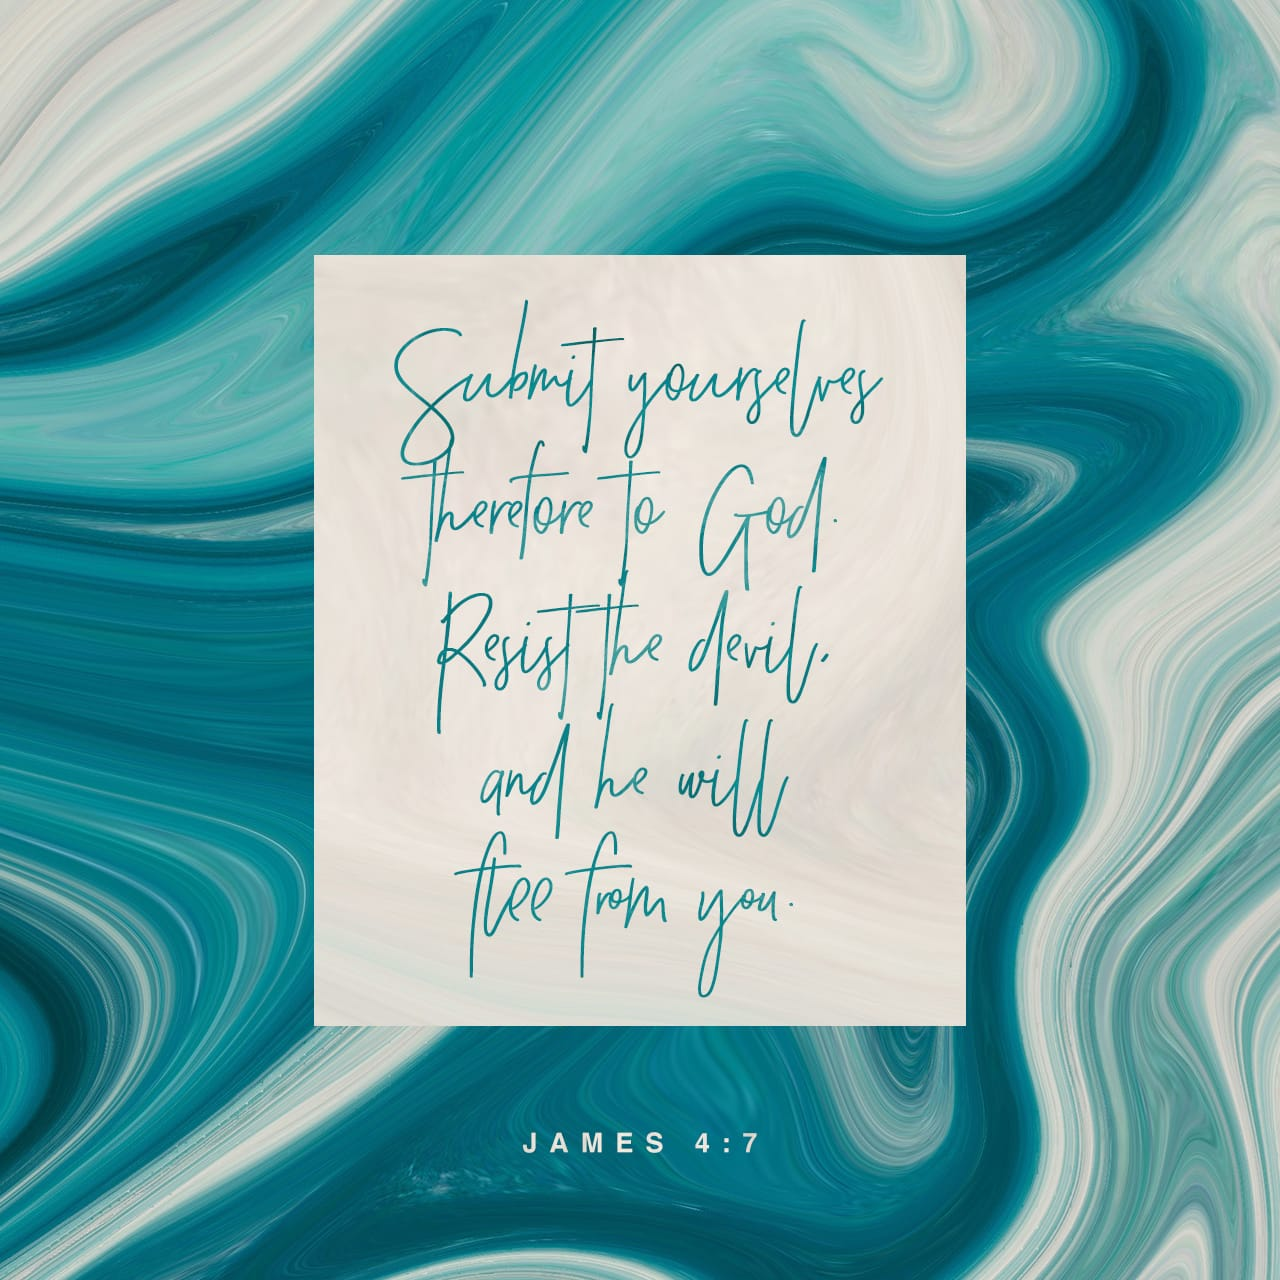 James 4:7 Submit yourselves therefore to God. Resist the devil, and he will flee from you. | King James Version (KJV)